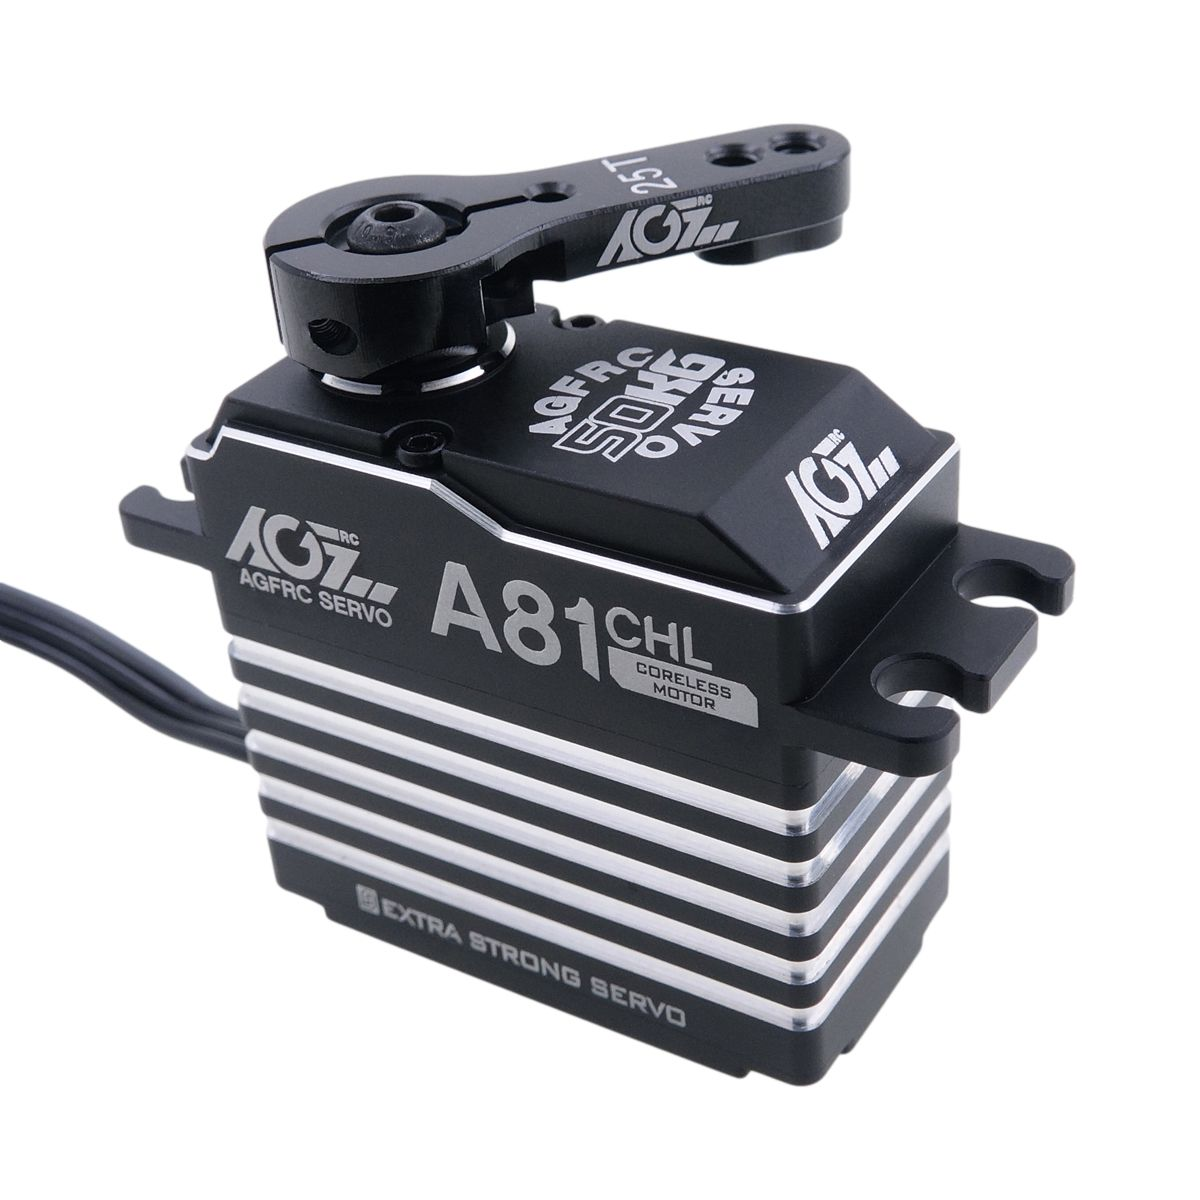 AGFRC A81CHL 7.4V 46KG 0.180Sec High Voltage Standard Size Coreless Servo for RC Cars Aircrafr Robot etc.